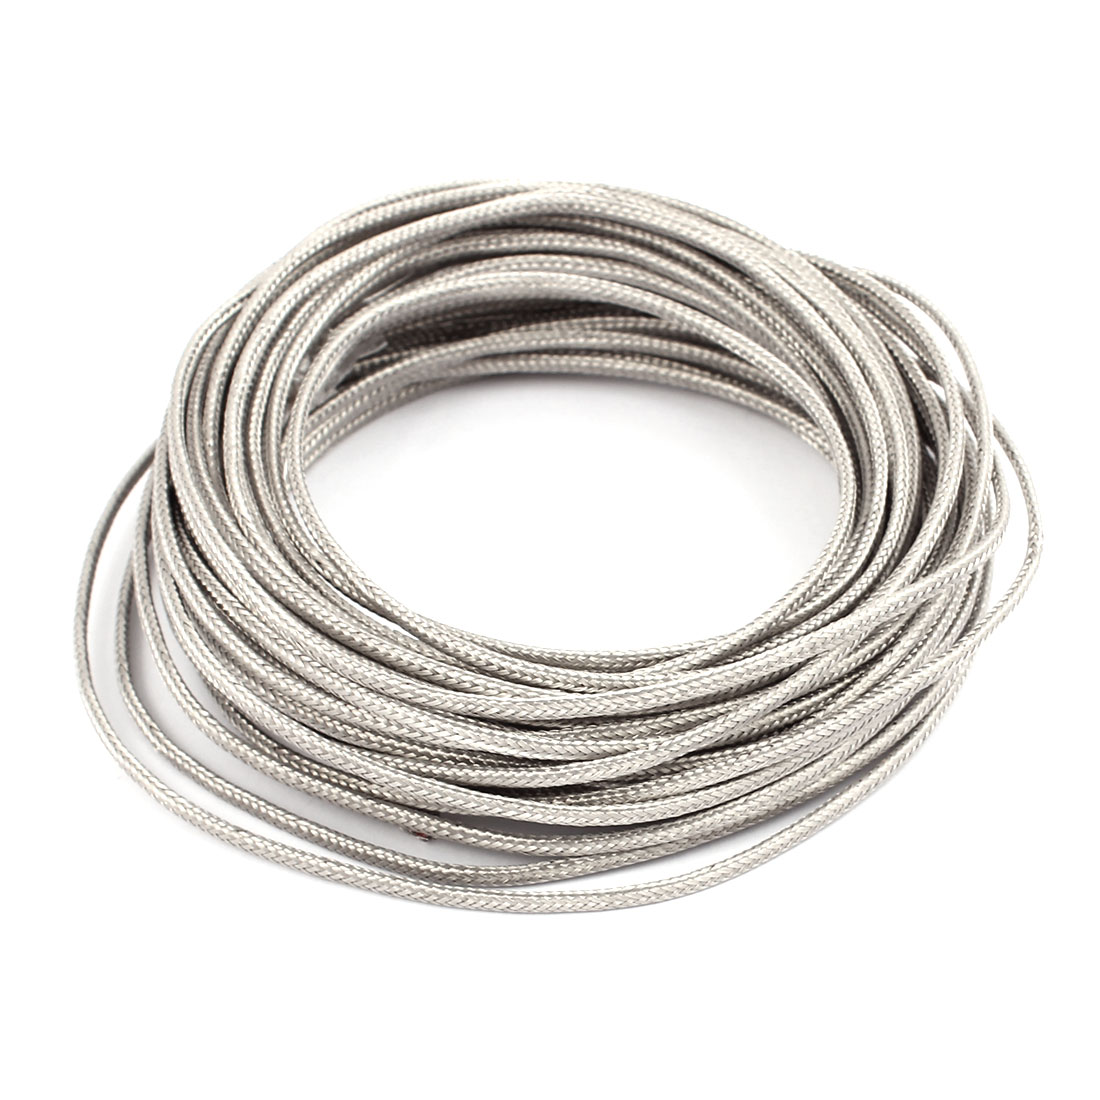 10.5 Meter 0.5mm Width Silver Tone Metal K Type Thermocouple Extension Wire